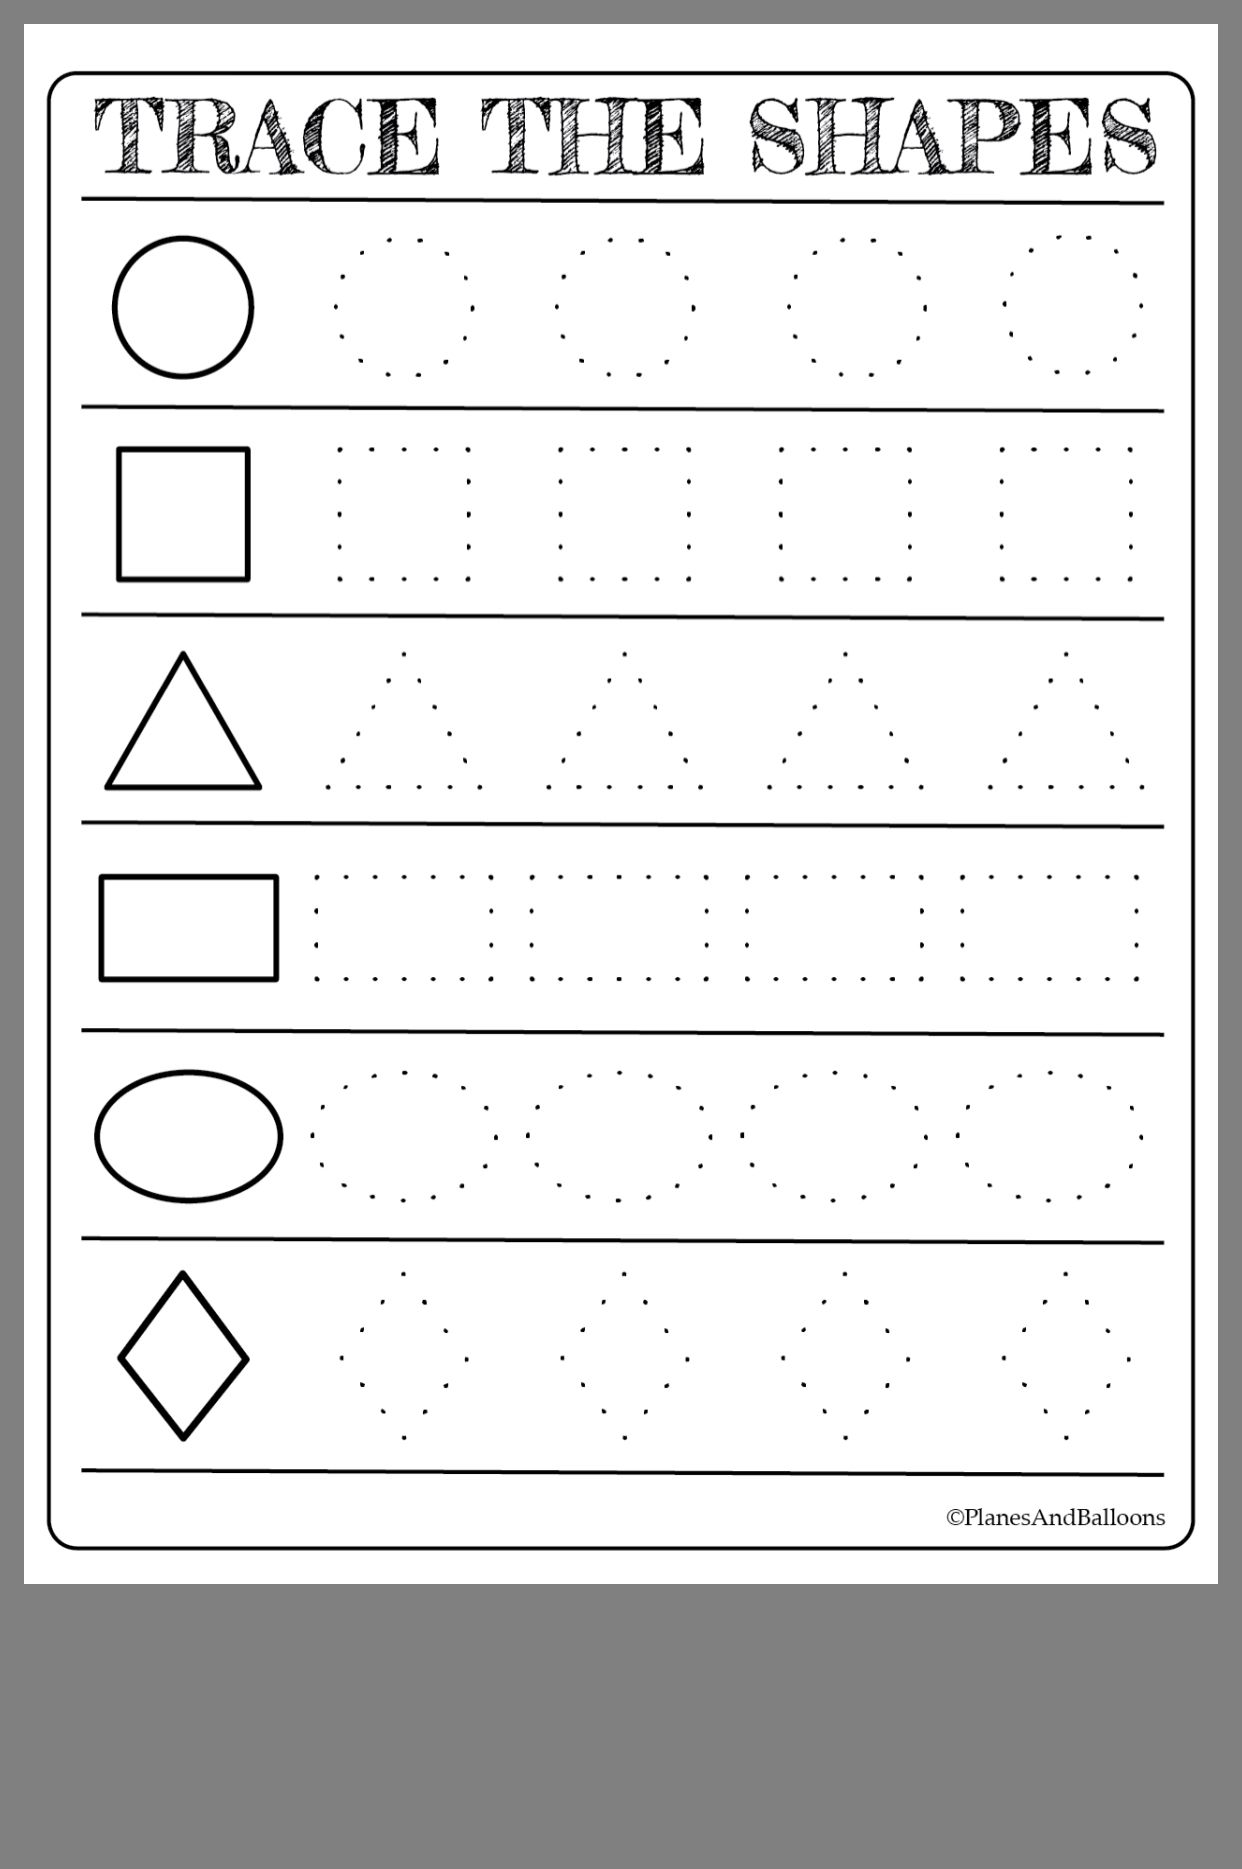 - Free Printable Shapes Worksheets For Toddlers And Preschoolers